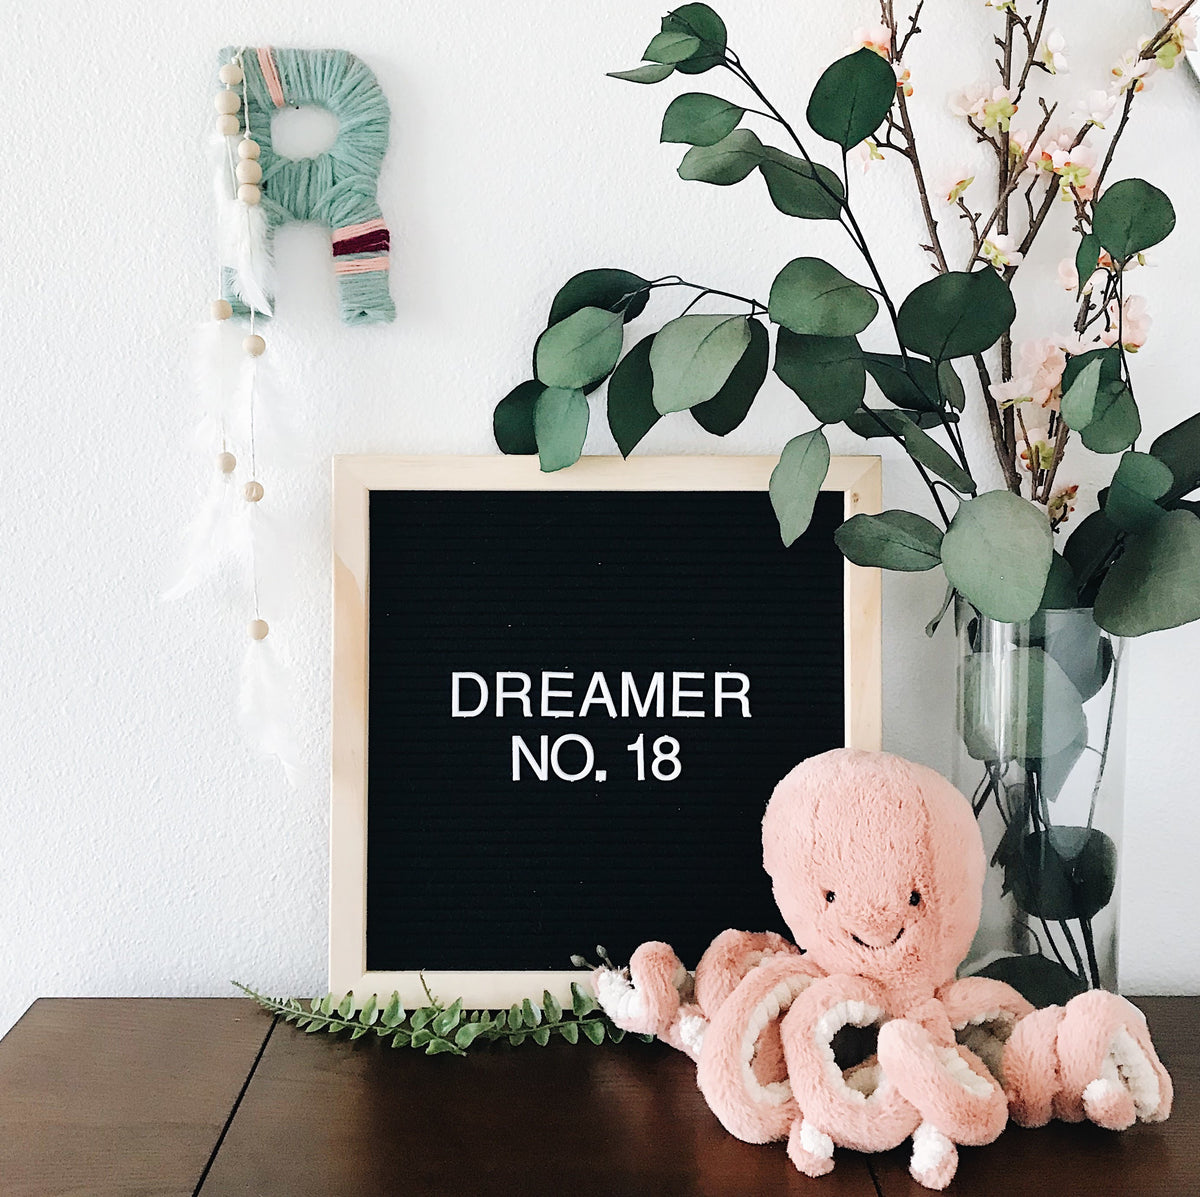 Dreamer No. 18 | 100 Days of Dreamers